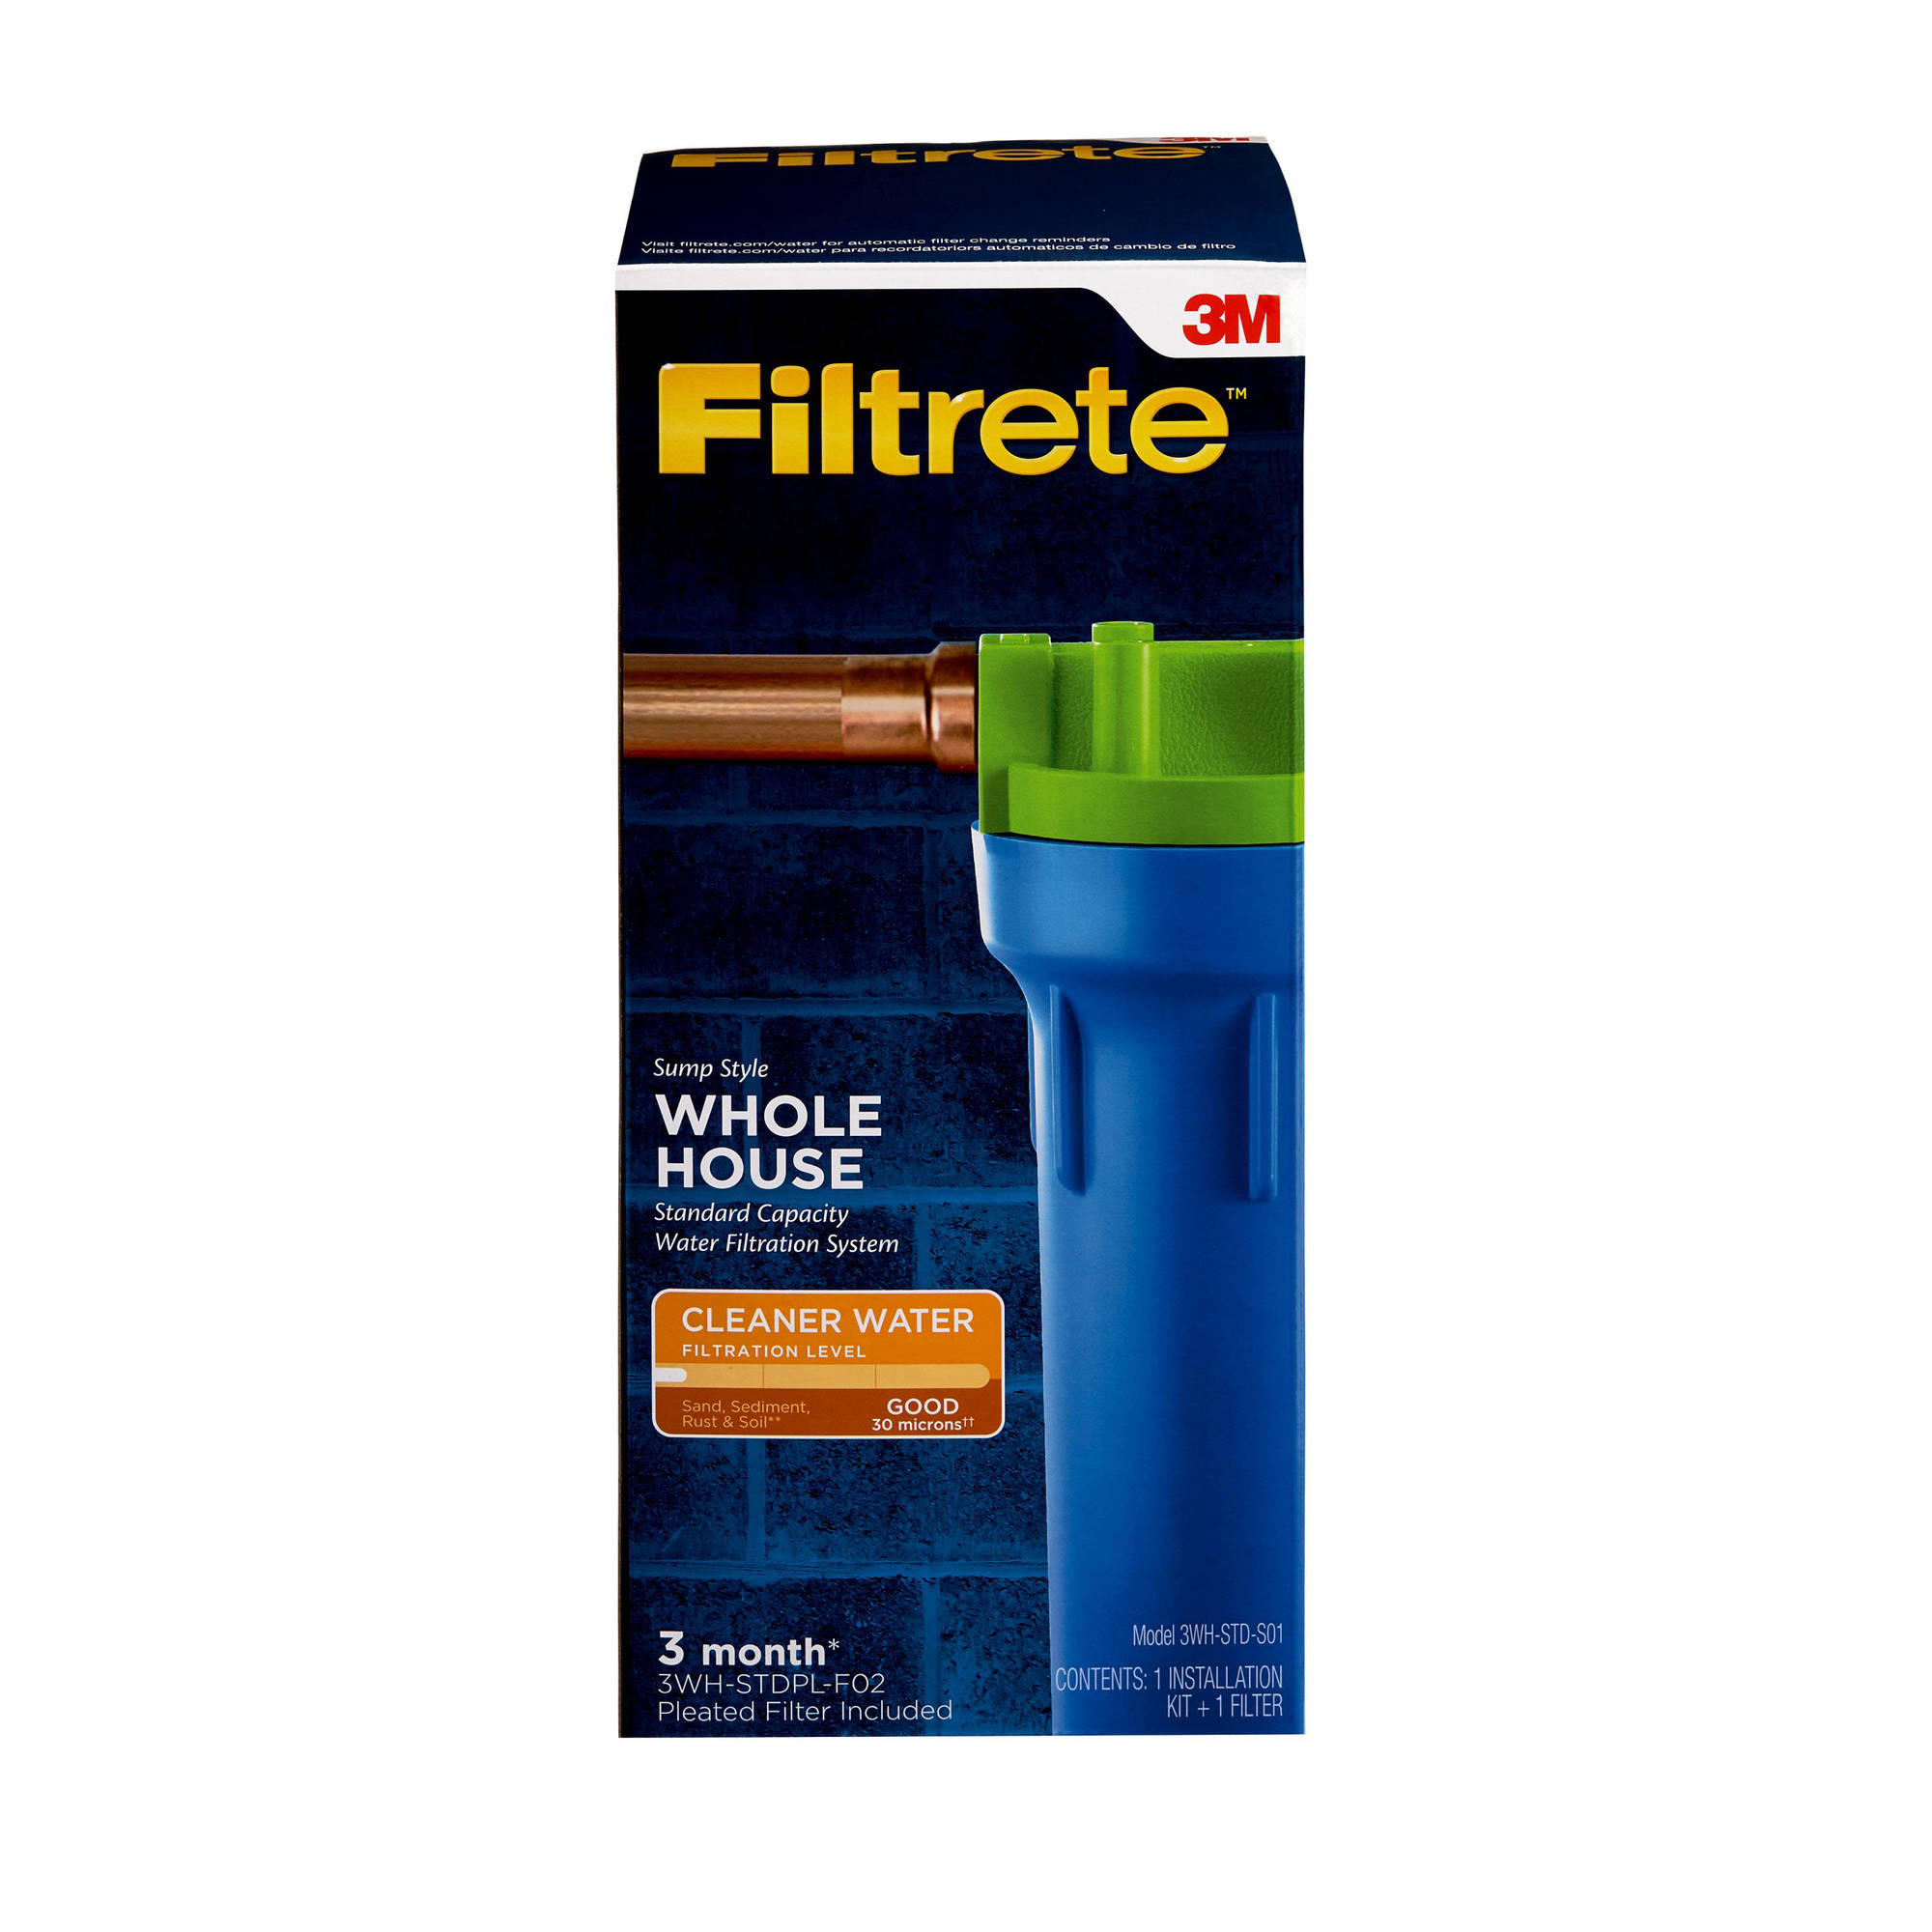 3M Filtrete Whole House Sump Filter System, Basic